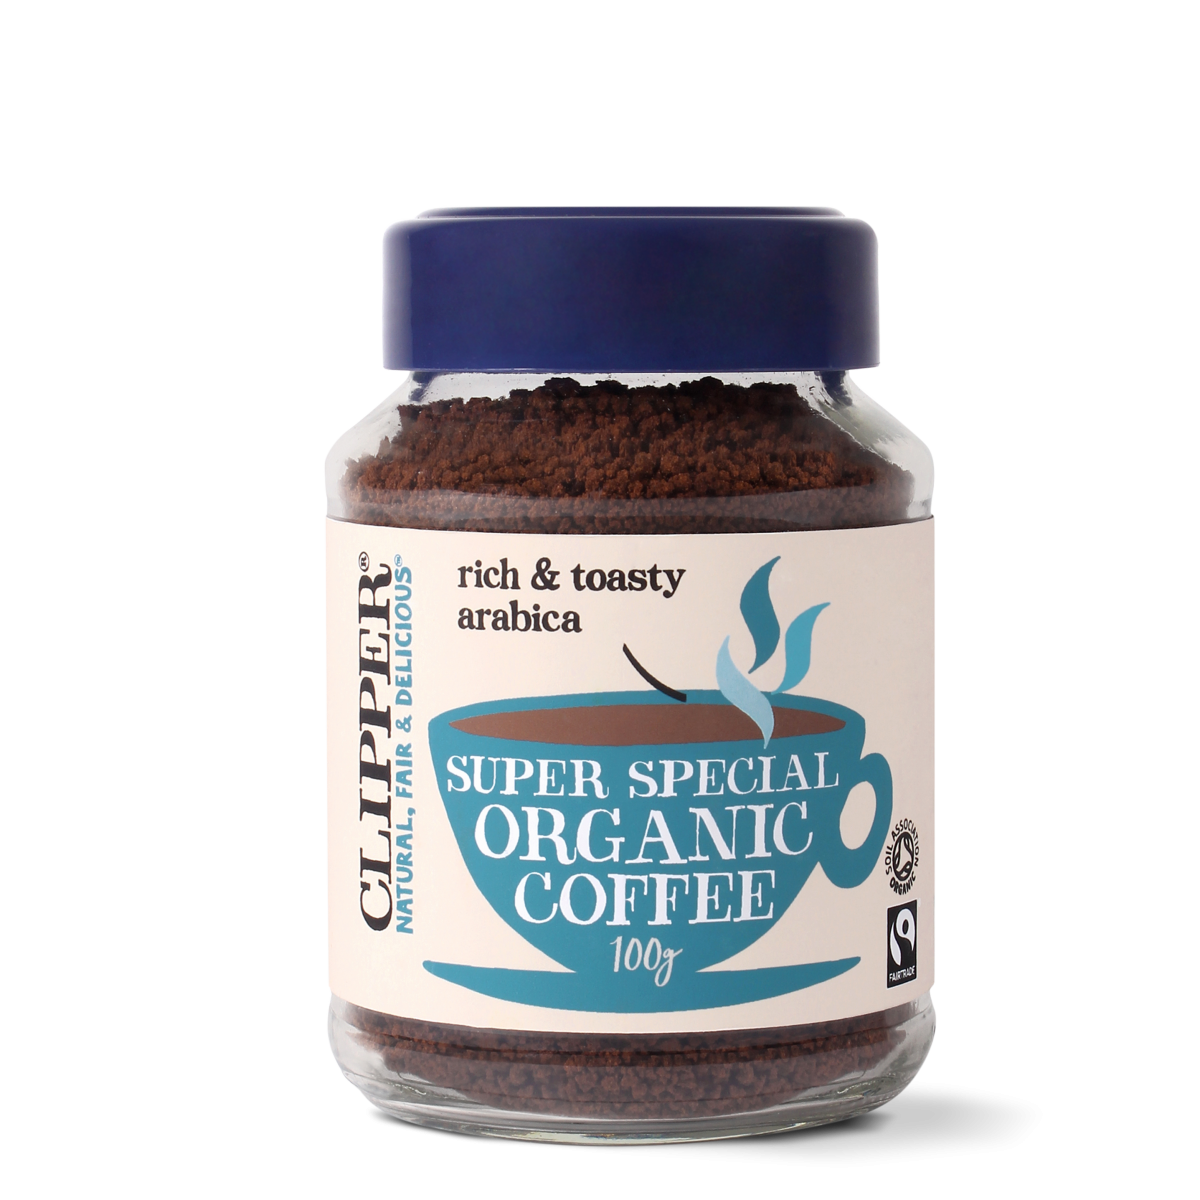 super special organic arabica coffee